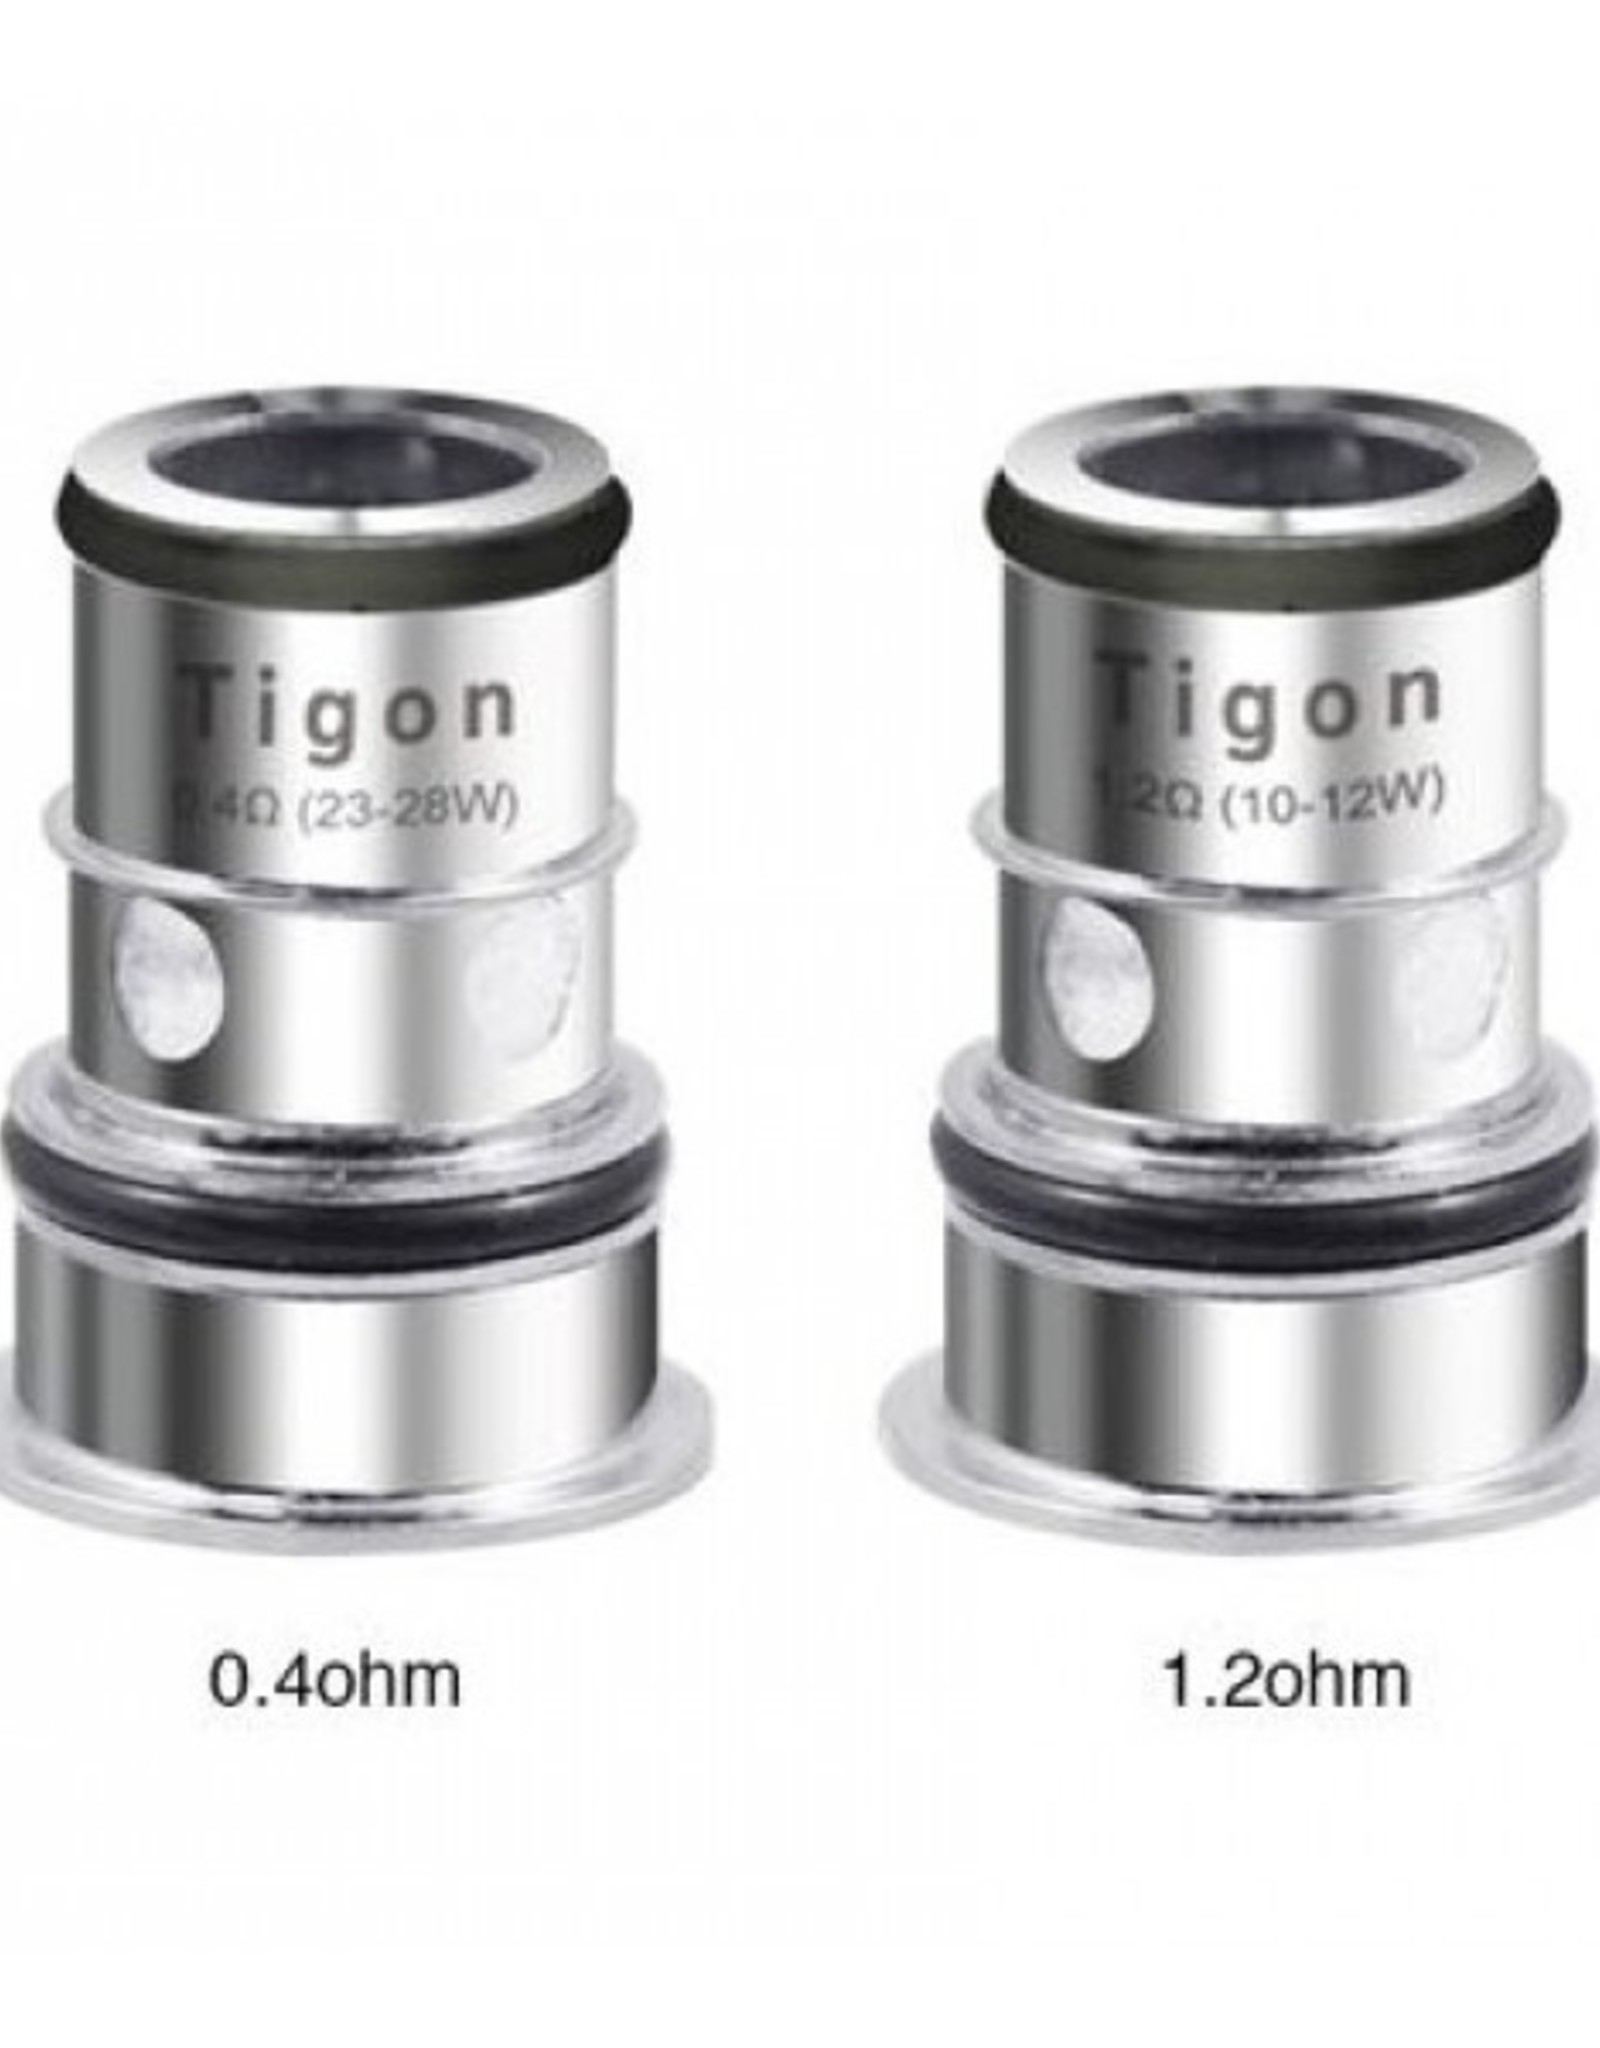 Aspire Aspire Tigon Coils (5 Pack)